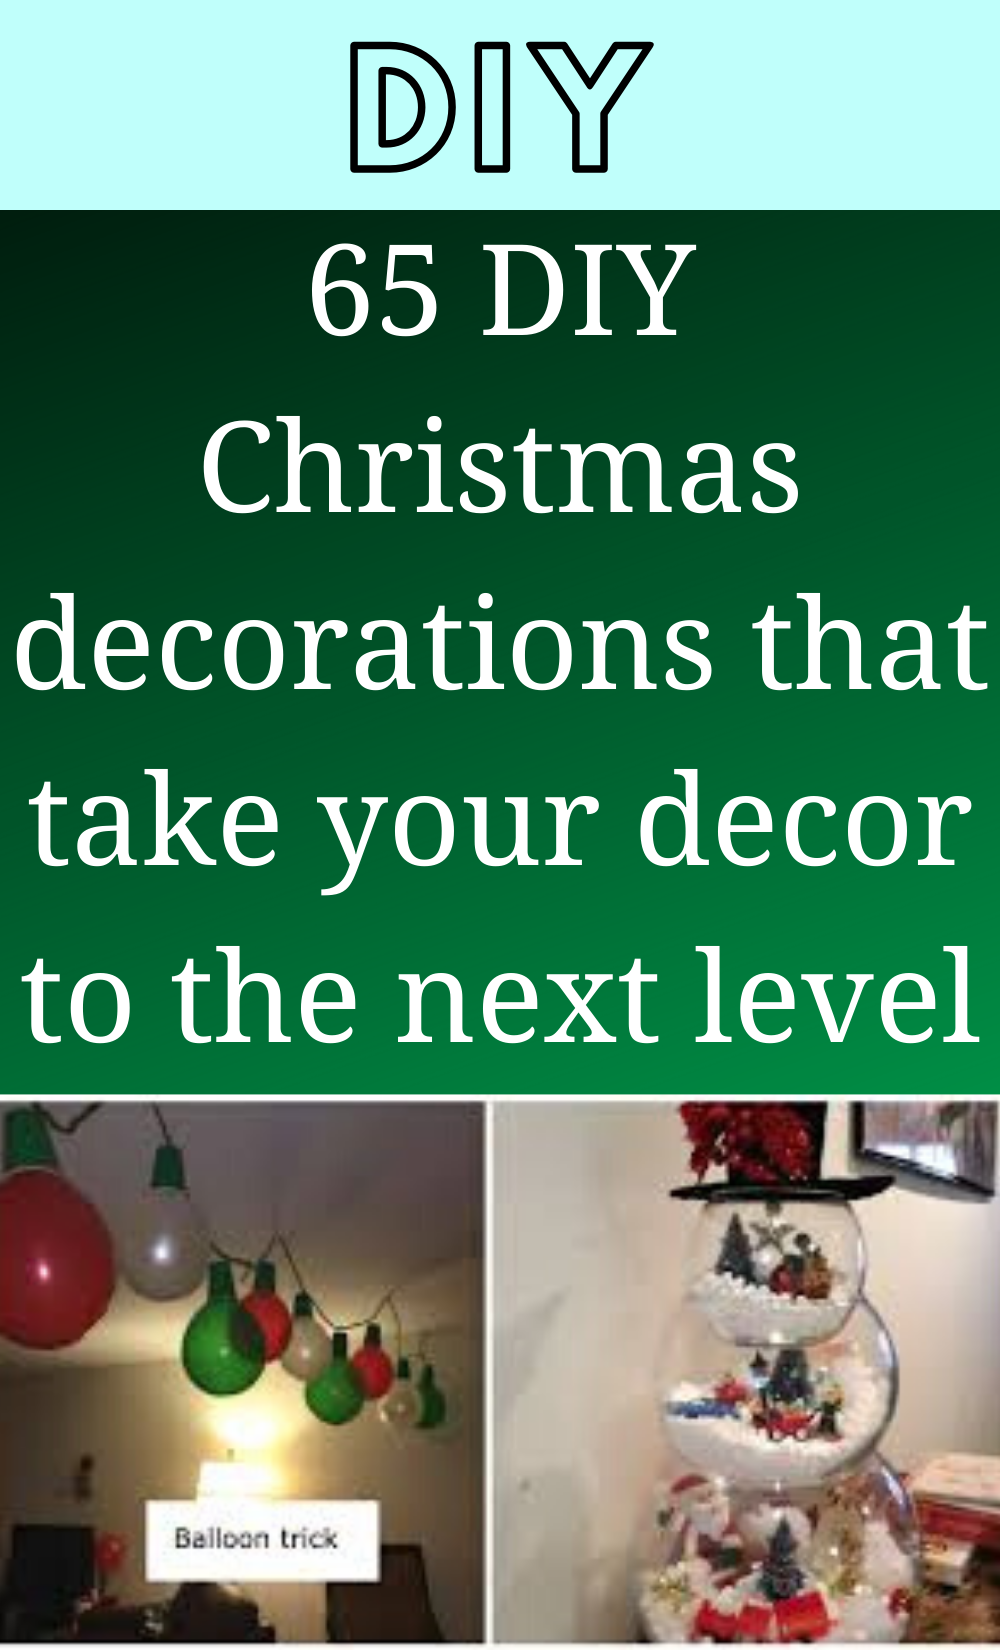 65 DIY Christmas decorations that take your decor to the next level